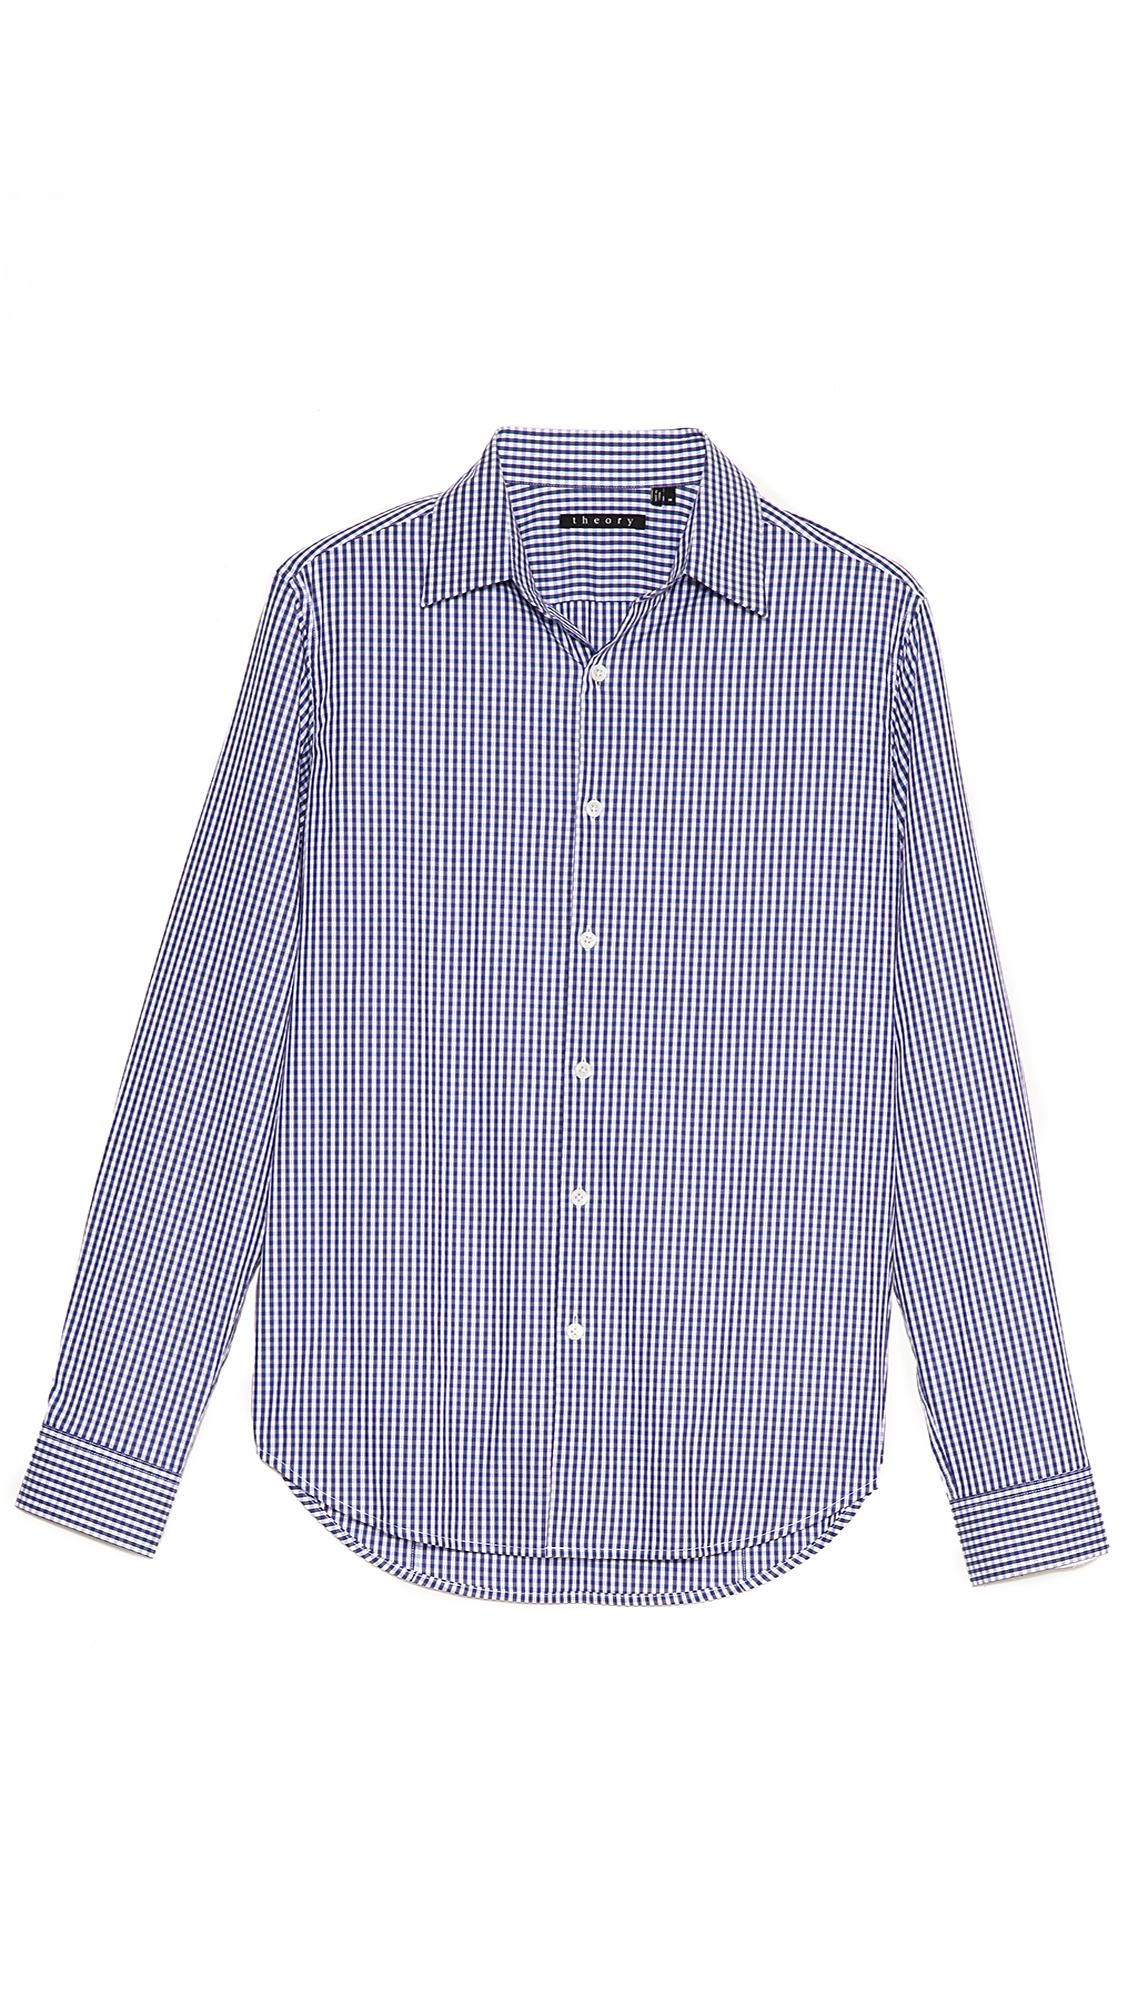 Theory sylvain gingham dress shirt in blue for men navy for Gingham dress shirt men